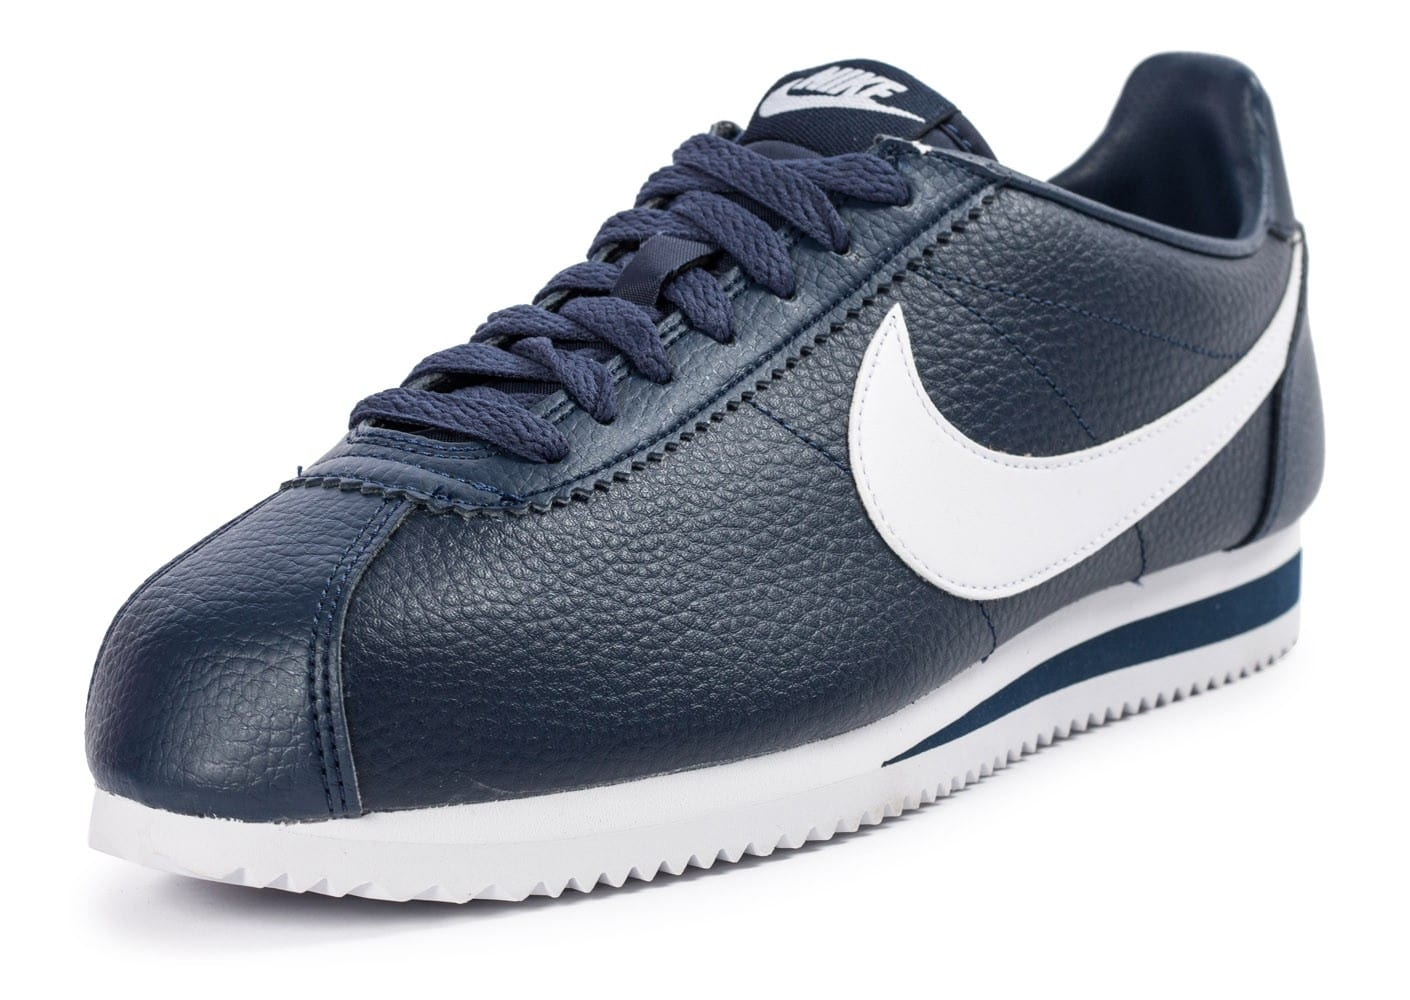 newest collection f2c19 252a0 ... chaussures nike cortez leather bleu marine vue avant